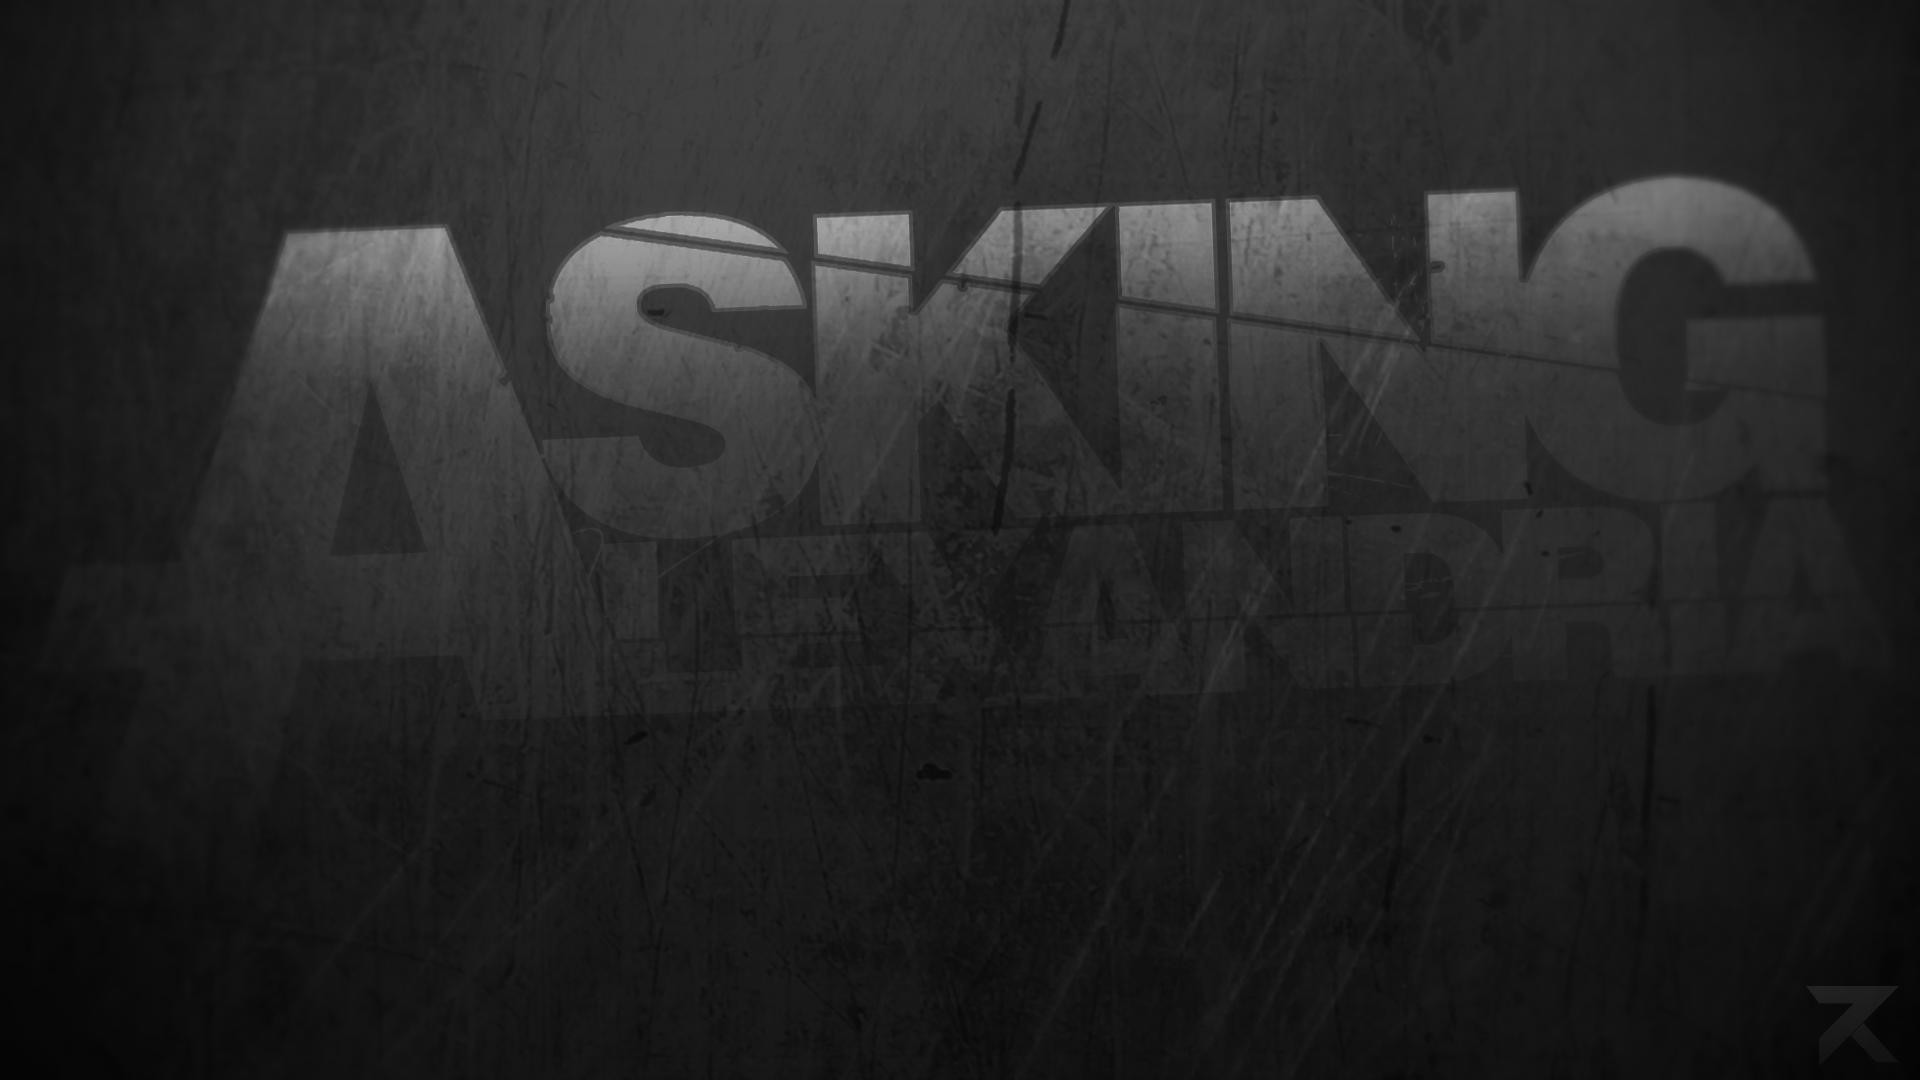 1920x1080 Asking Alexandria Background Free Download.